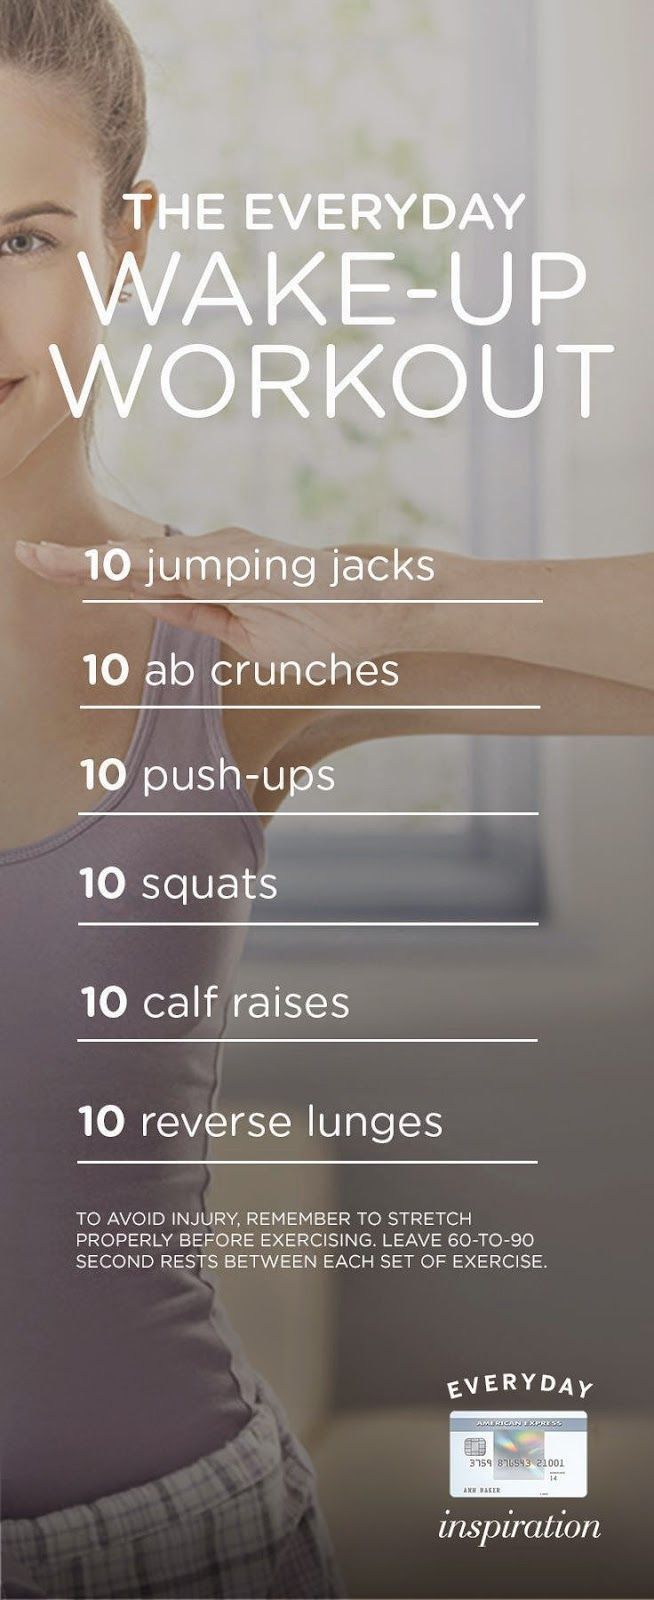 12 Weight Loss Morning Workouts To Burn Maximum Calories! - Fit Girls Diary